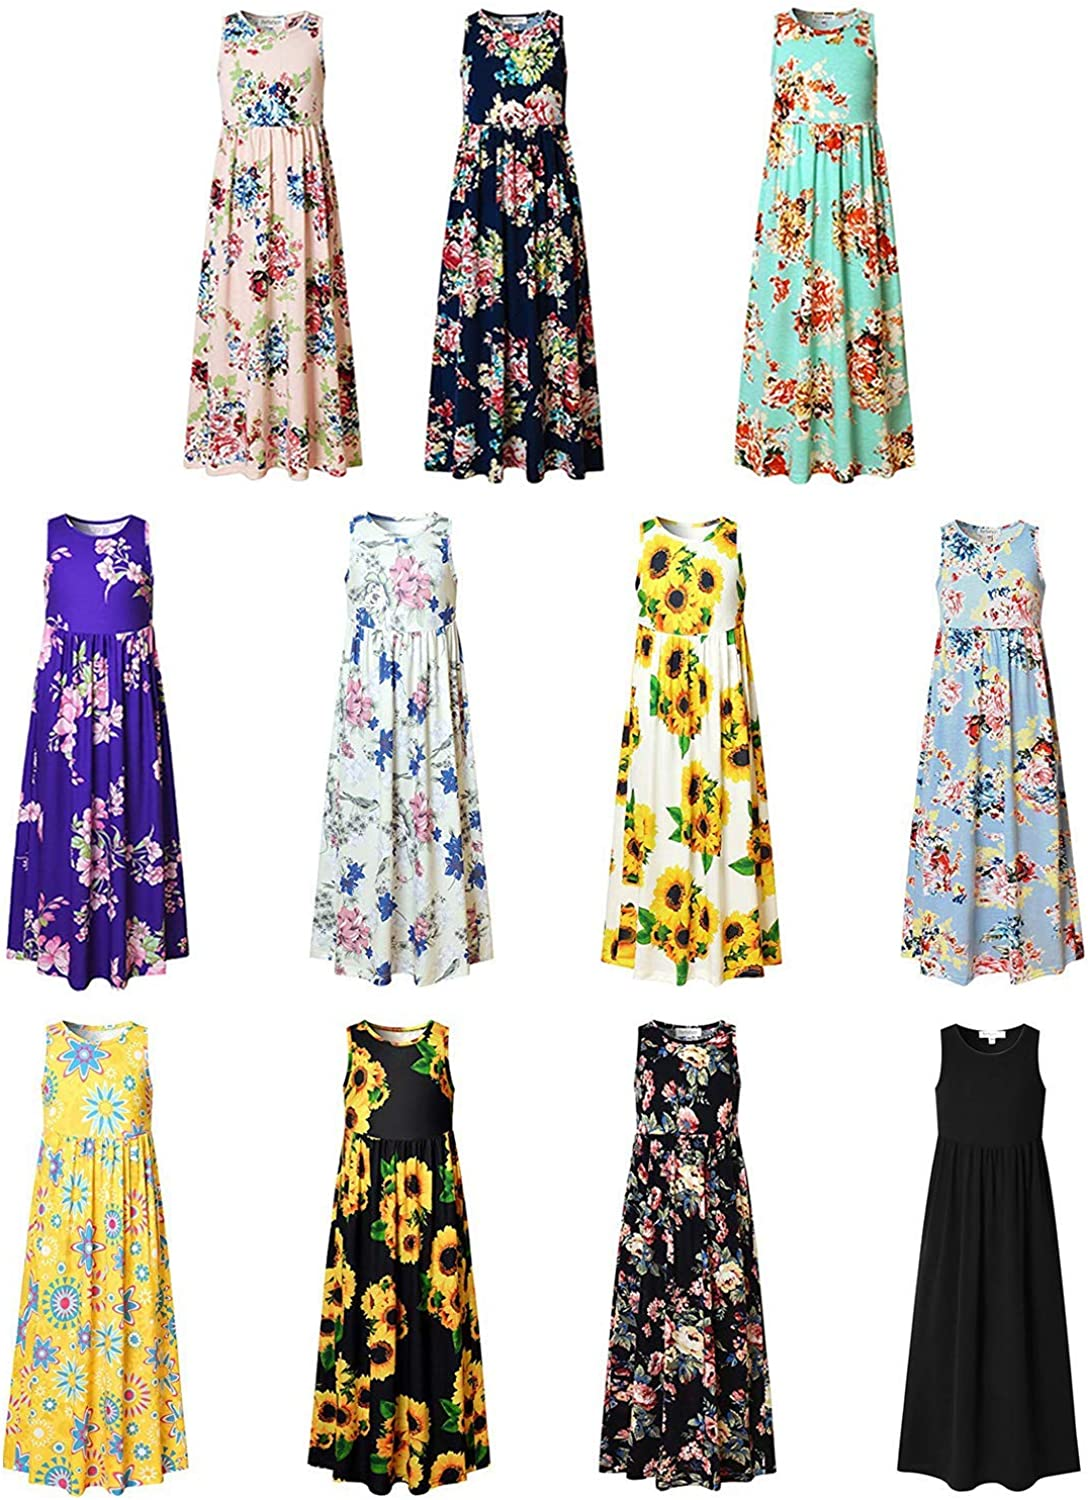 Maxi Dresses for Girls Unicorn Floral Summer Sleeveless Casual Pockets Long